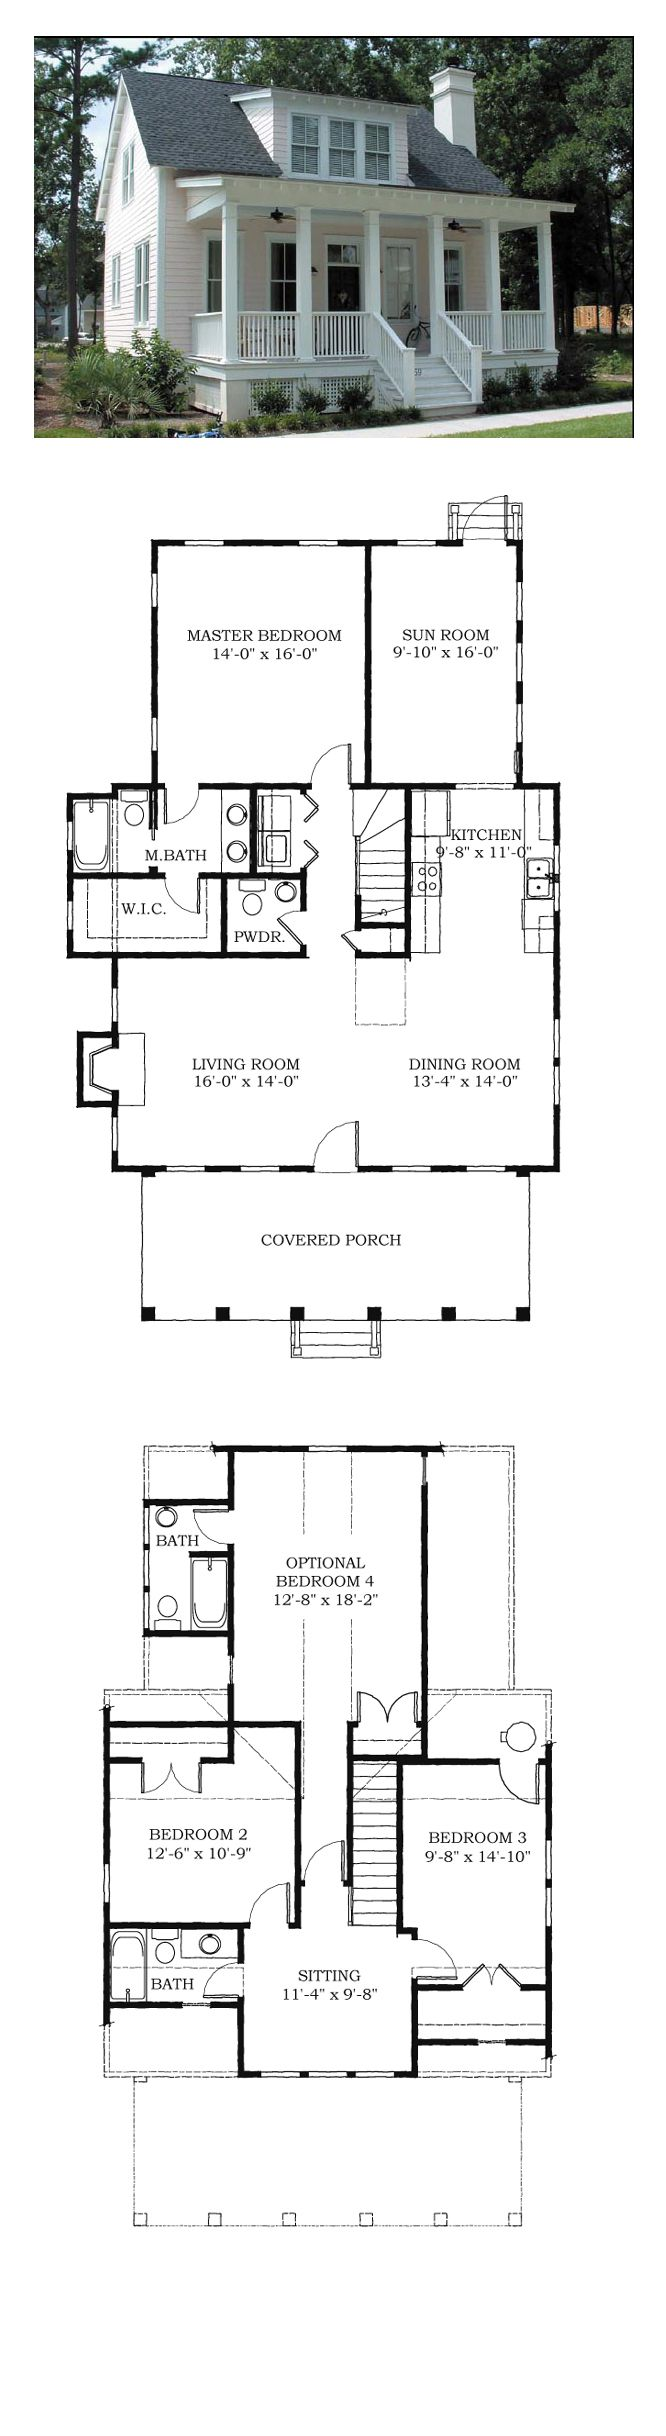 Blueprint Home Plans New in raleigh kitchen cabinets Home Decorating